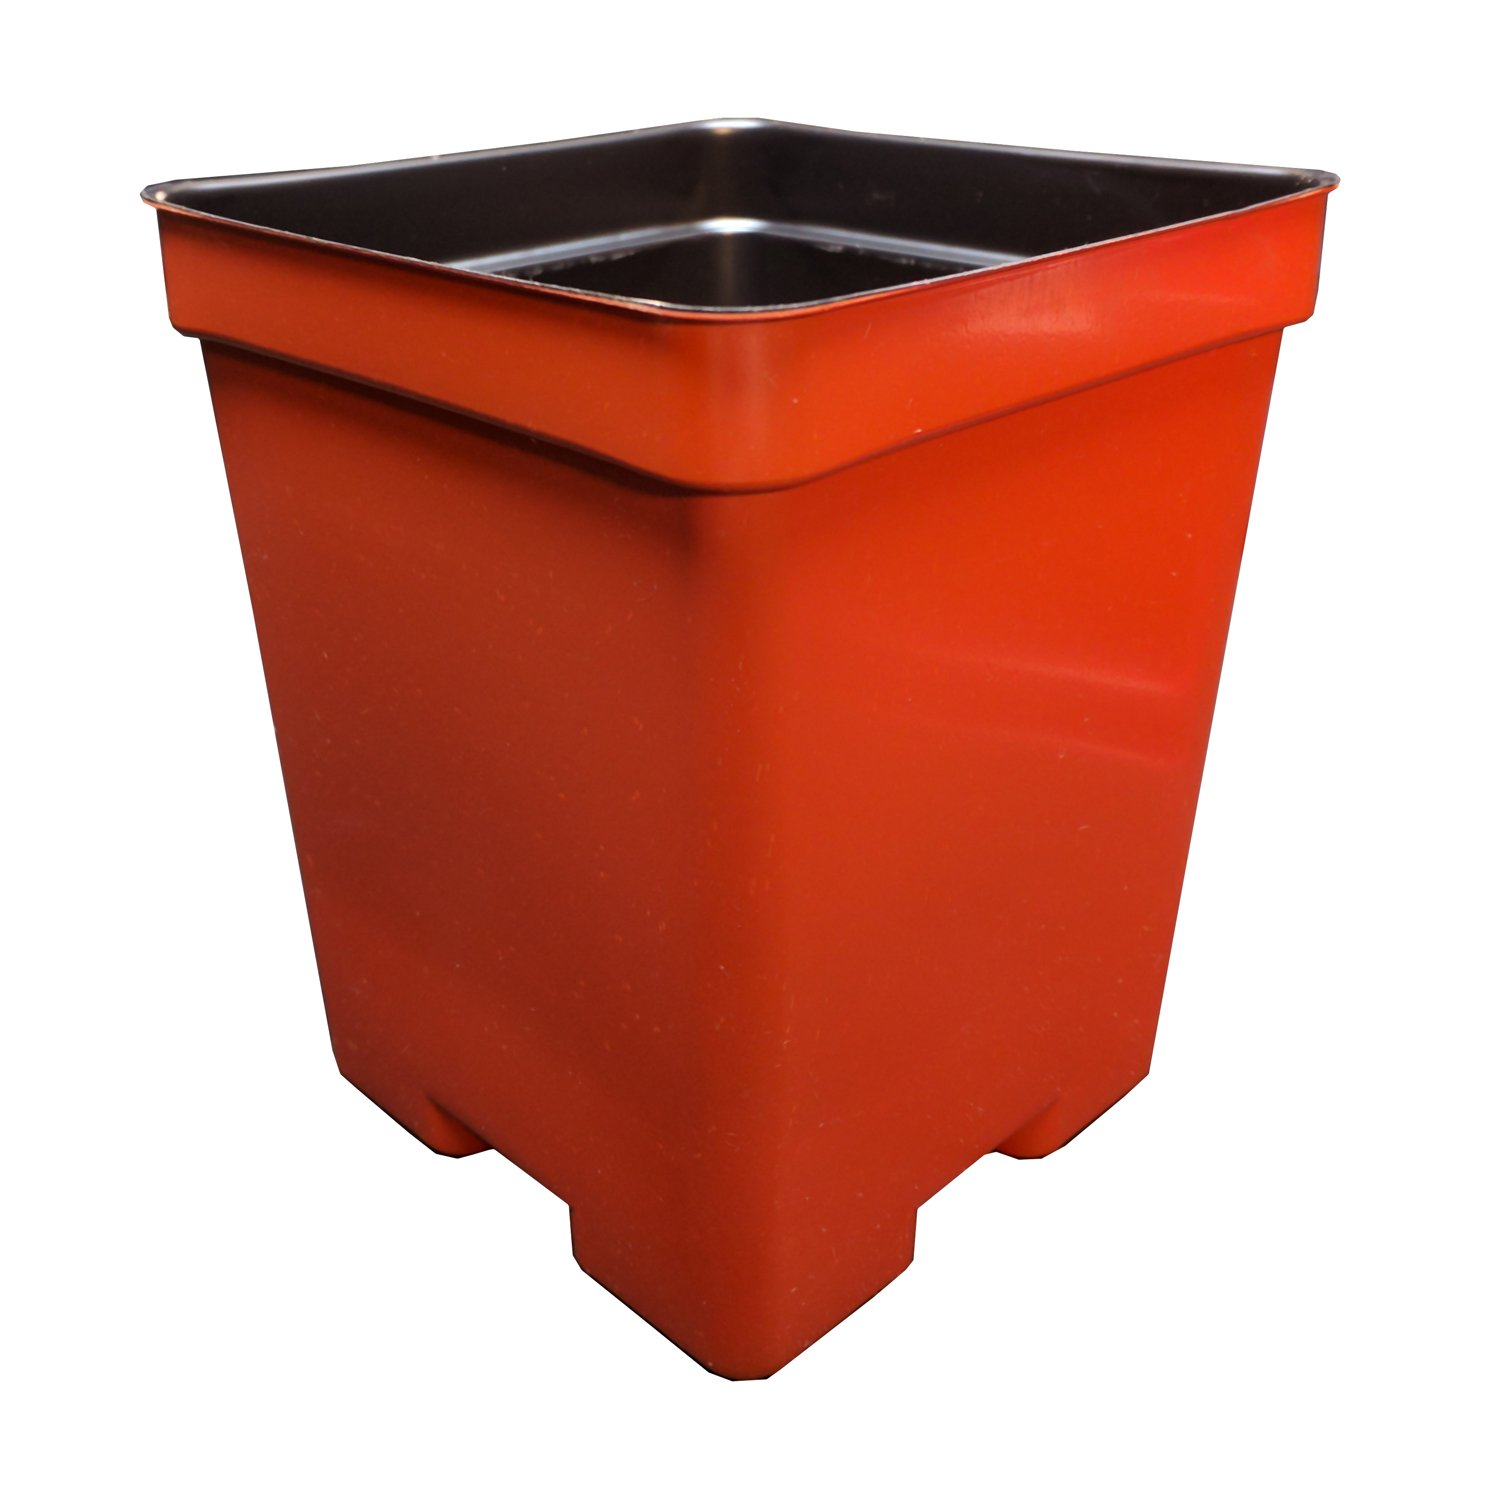 4.5'' Square Deep Press Fit Plastic Flower Pots - Made in the USA - Reusable, Recyclable - Garden, Greenhouse, Hydroponics, Seed Starting (Actual Dimensions 4.125'' Square by 5'' Deep) (375, Terracotta) by Second Sun Hydroponics